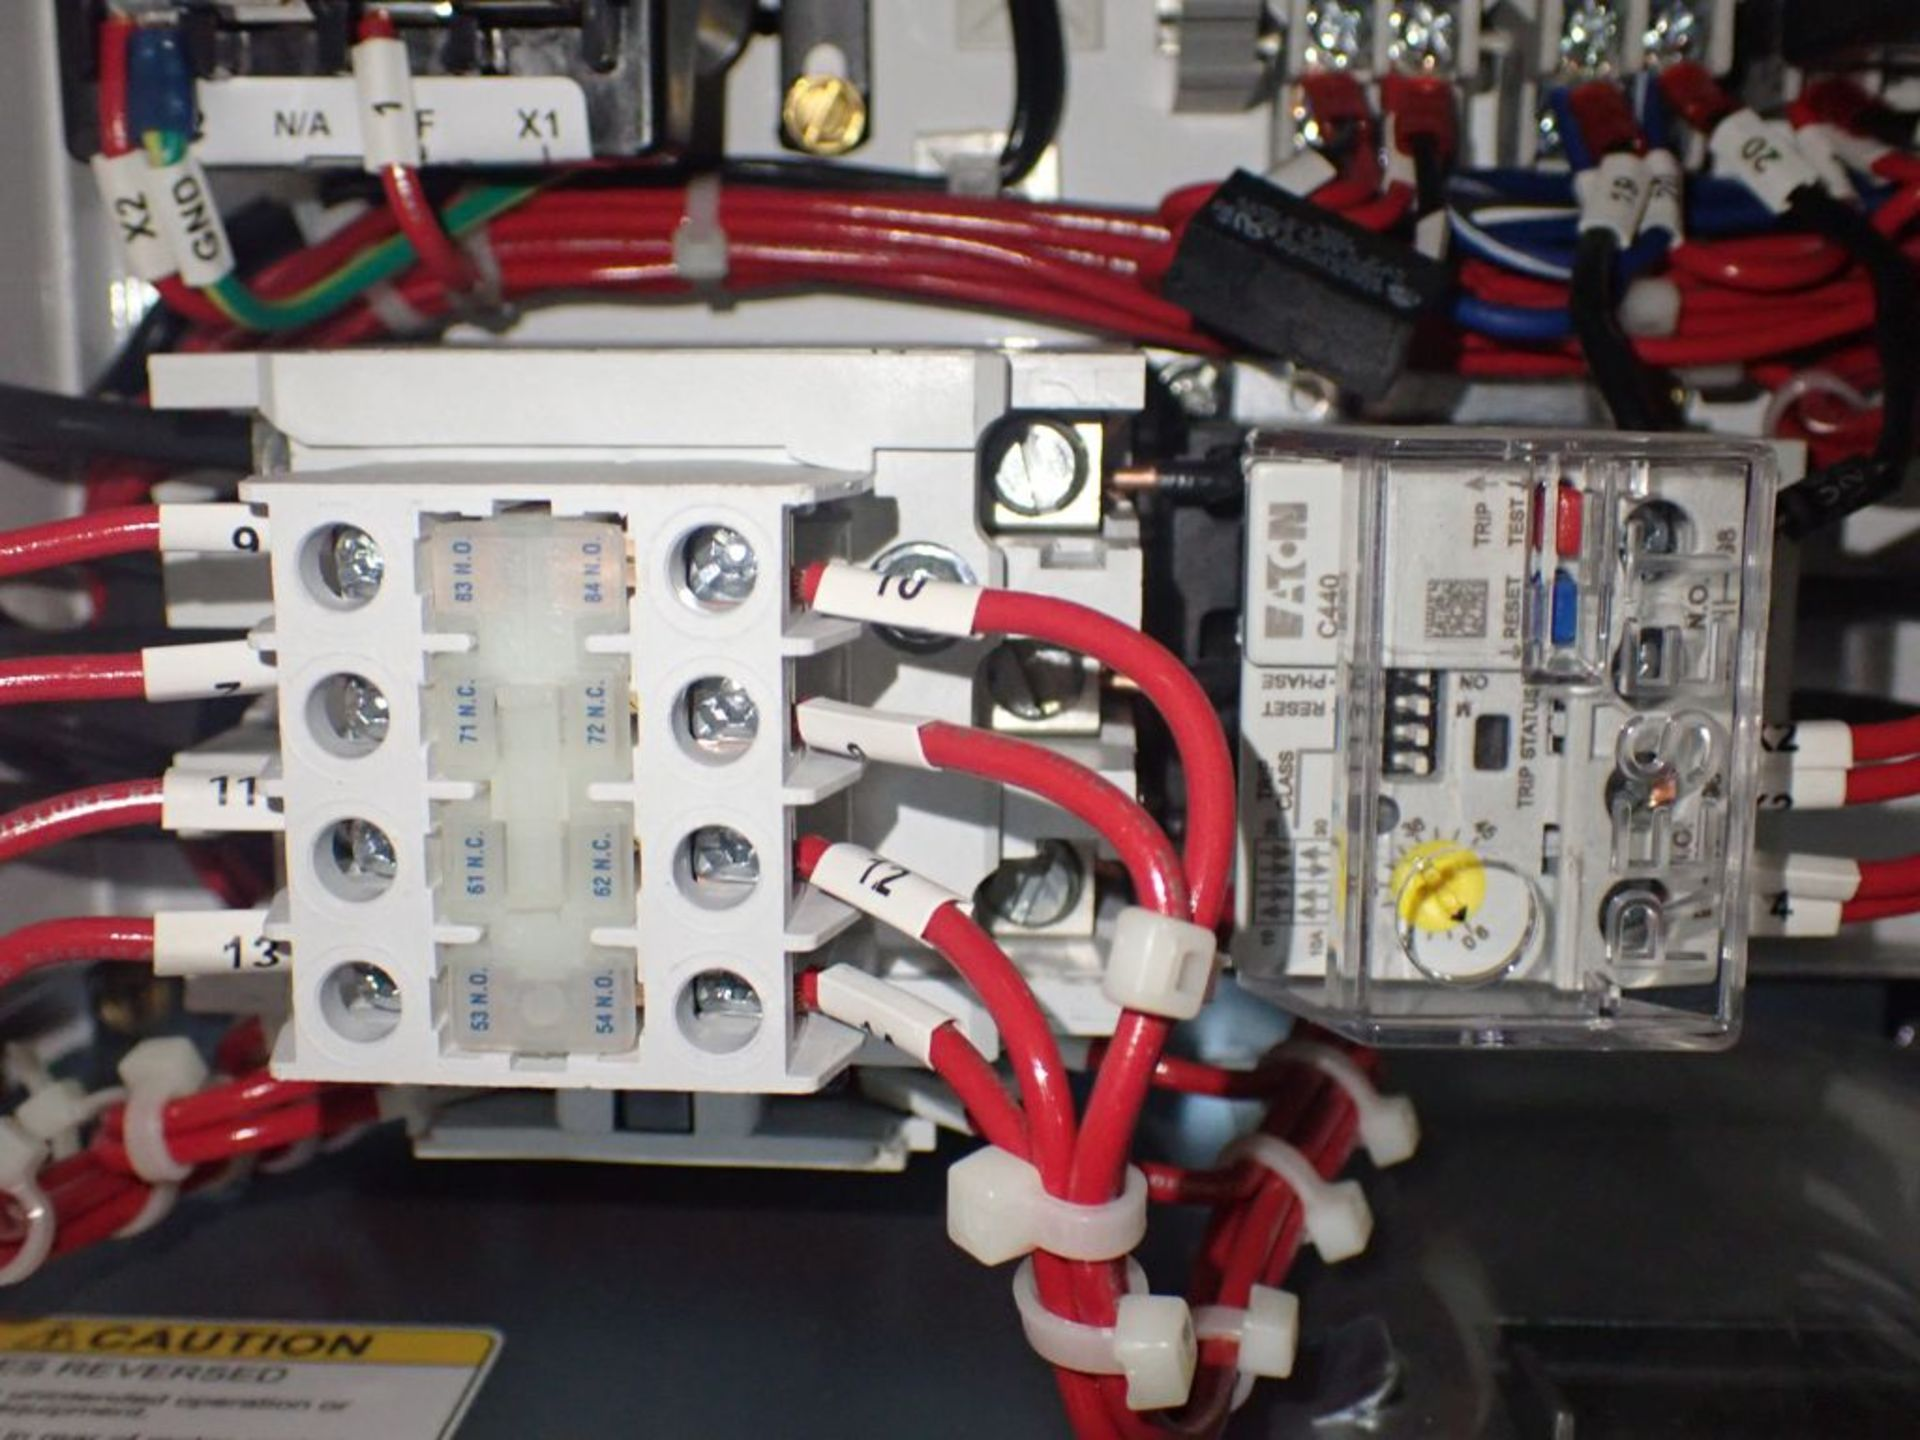 Eaton Freedom 2100 Series Motor Control Center | (2) F206-15A-10HP; (1) FDRB-250A; (1) FDRB-400A; ( - Image 87 of 104